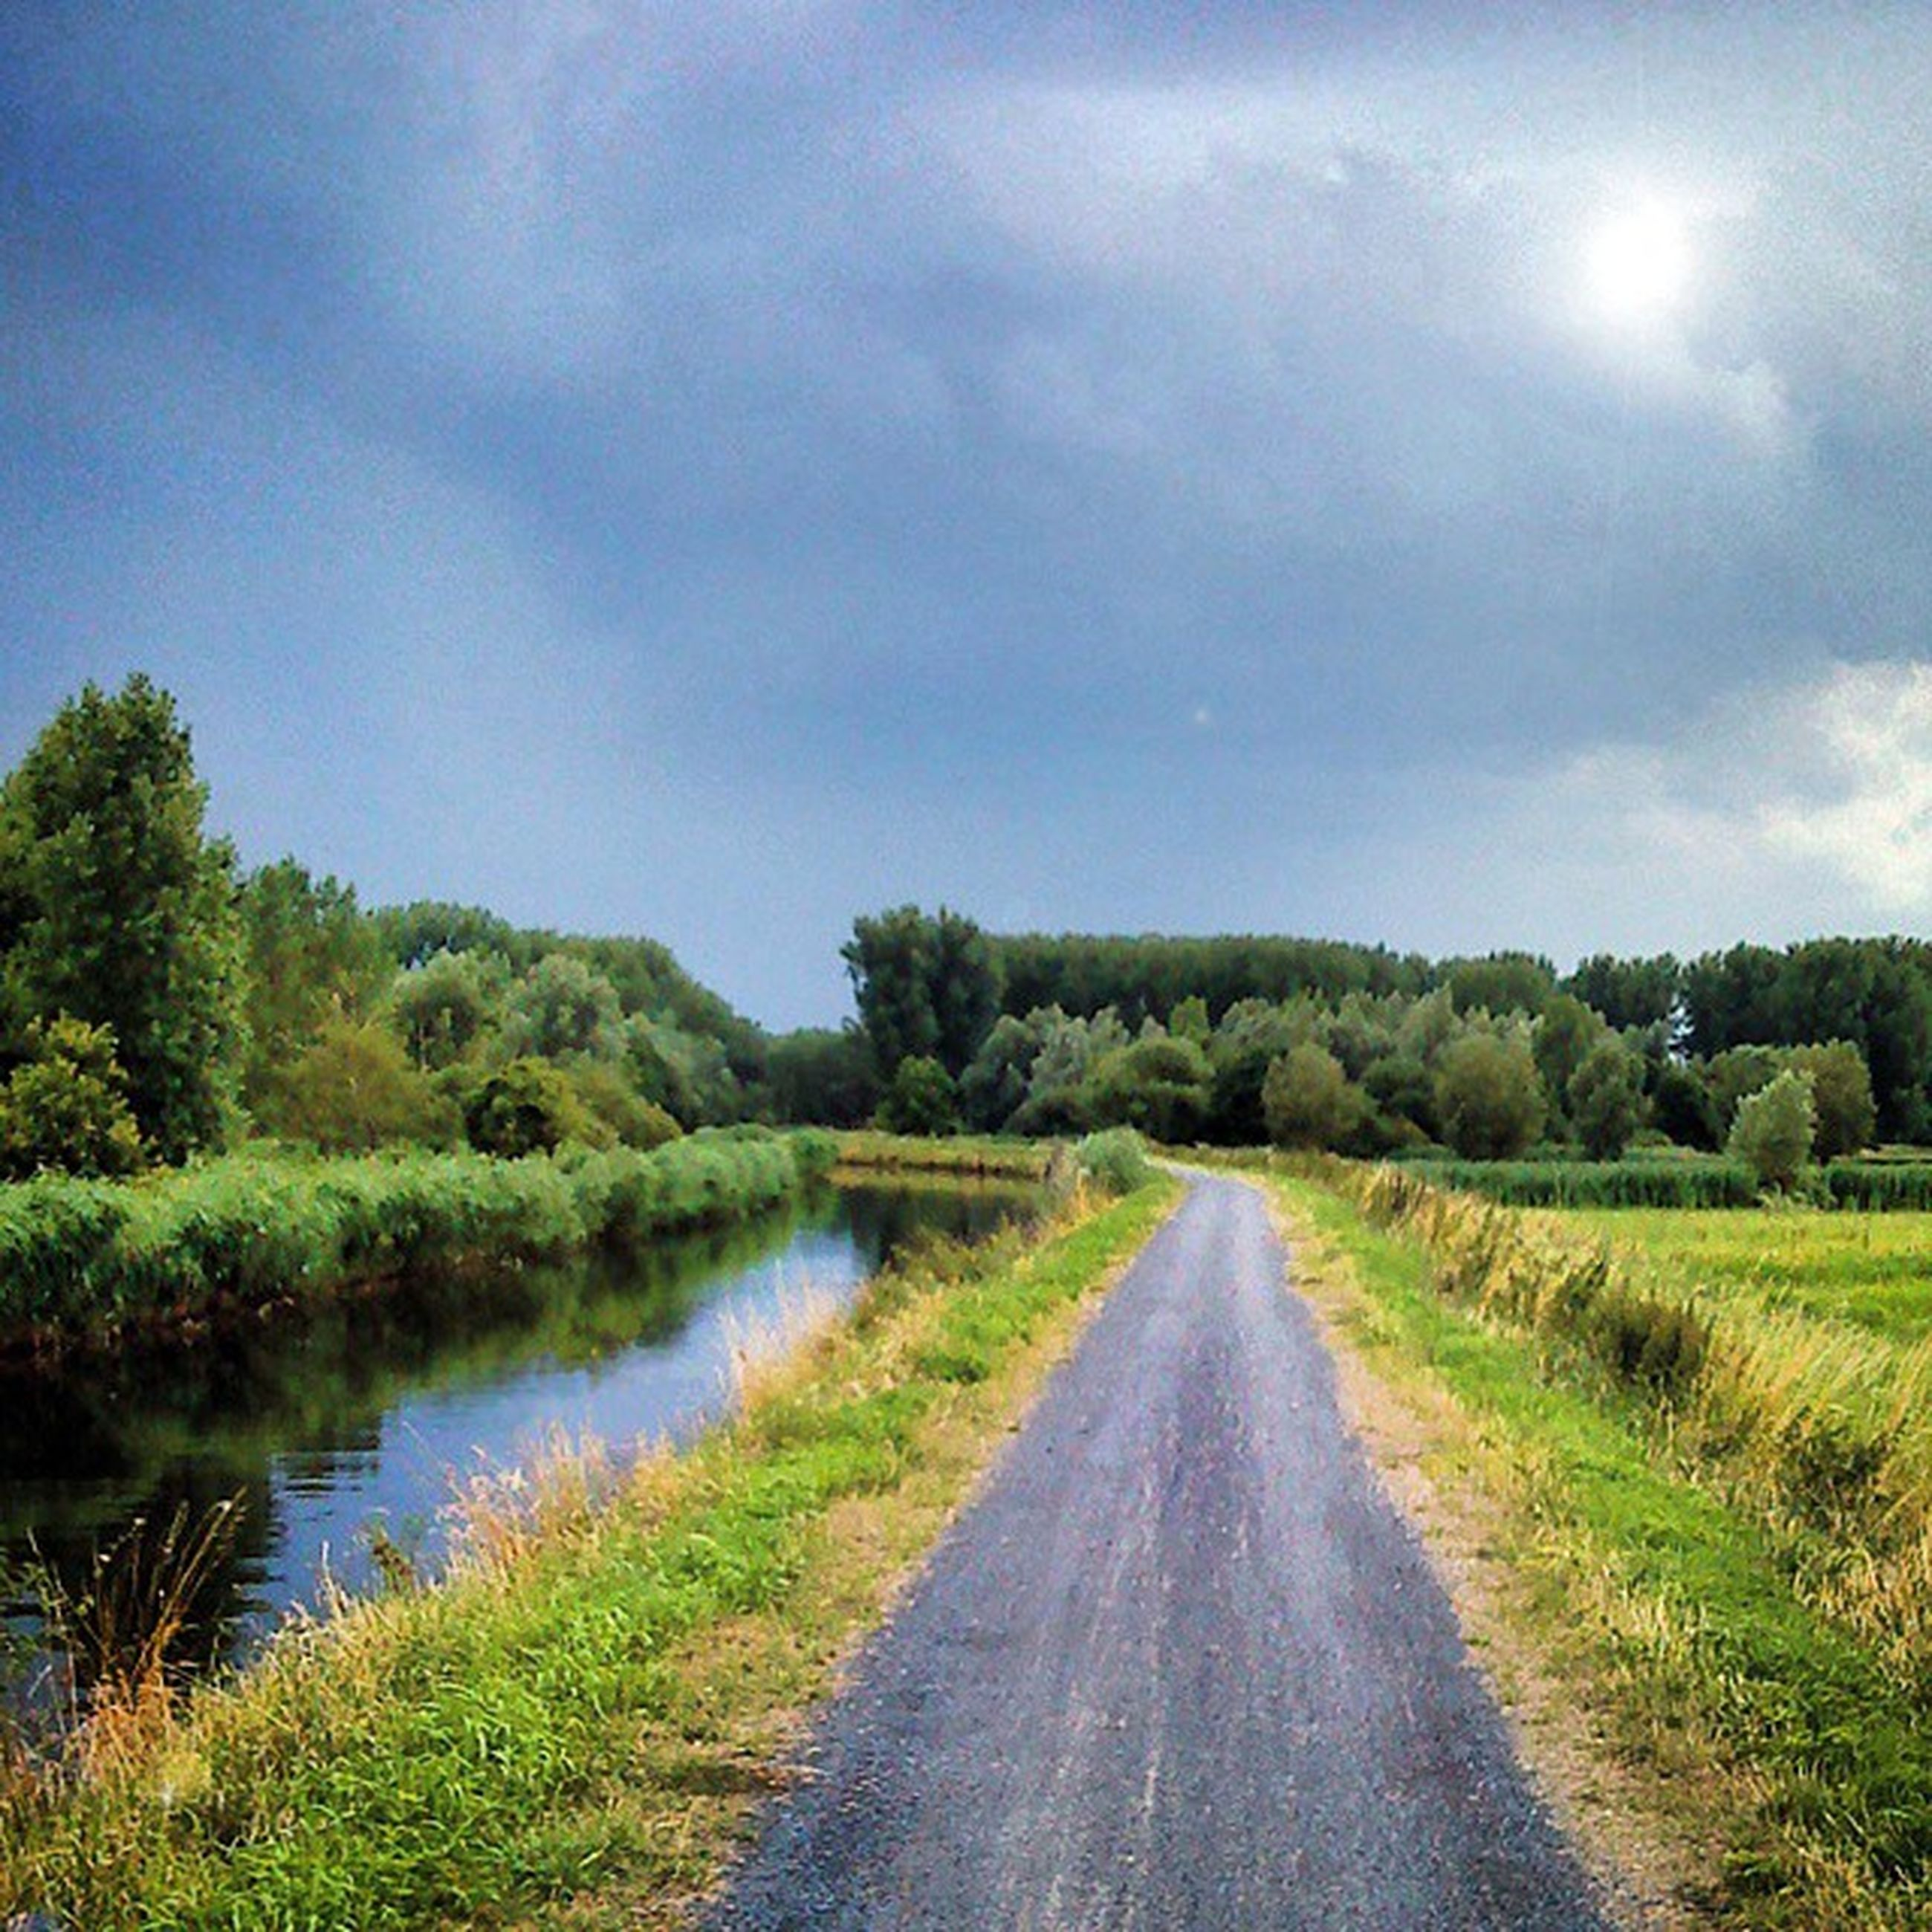 sky, the way forward, grass, tranquility, tranquil scene, diminishing perspective, tree, cloud - sky, landscape, nature, water, field, scenics, beauty in nature, growth, vanishing point, cloud, plant, road, grassy